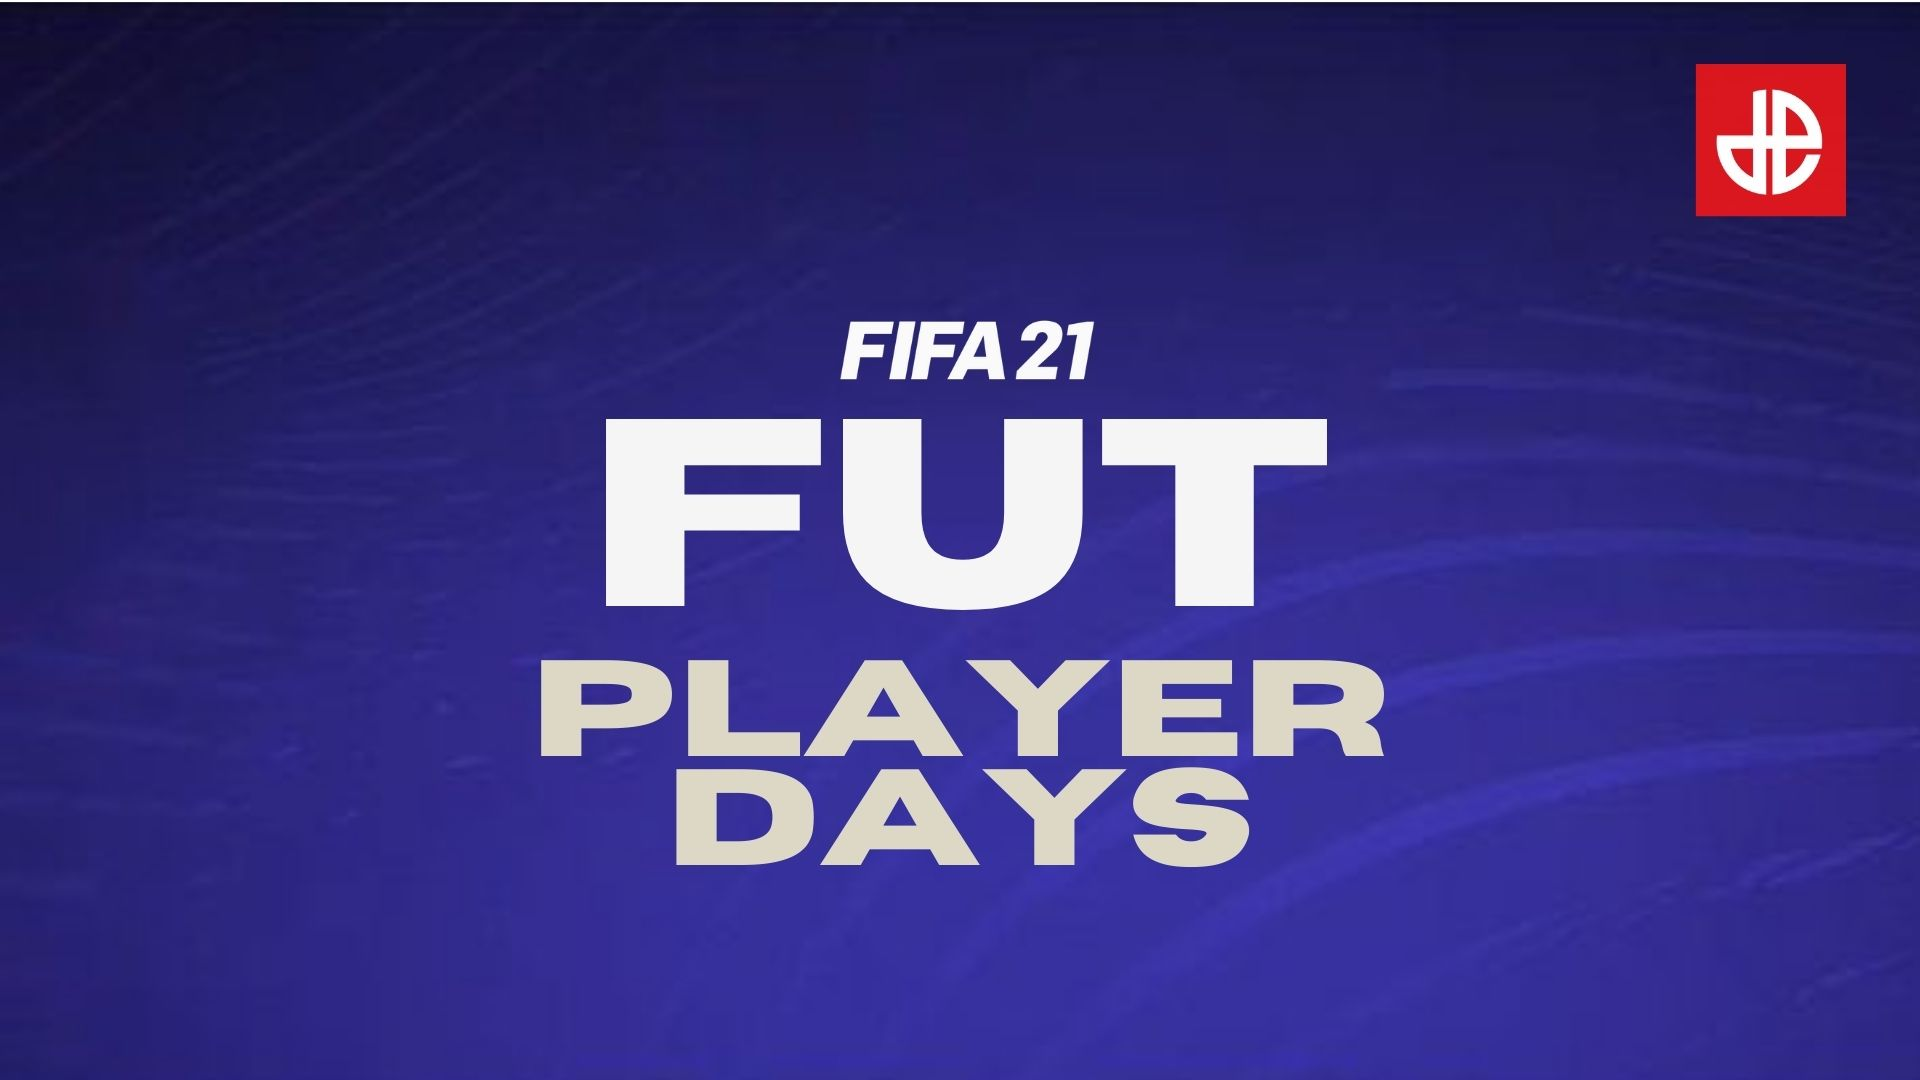 FIFA 21 FUT Player Days logo